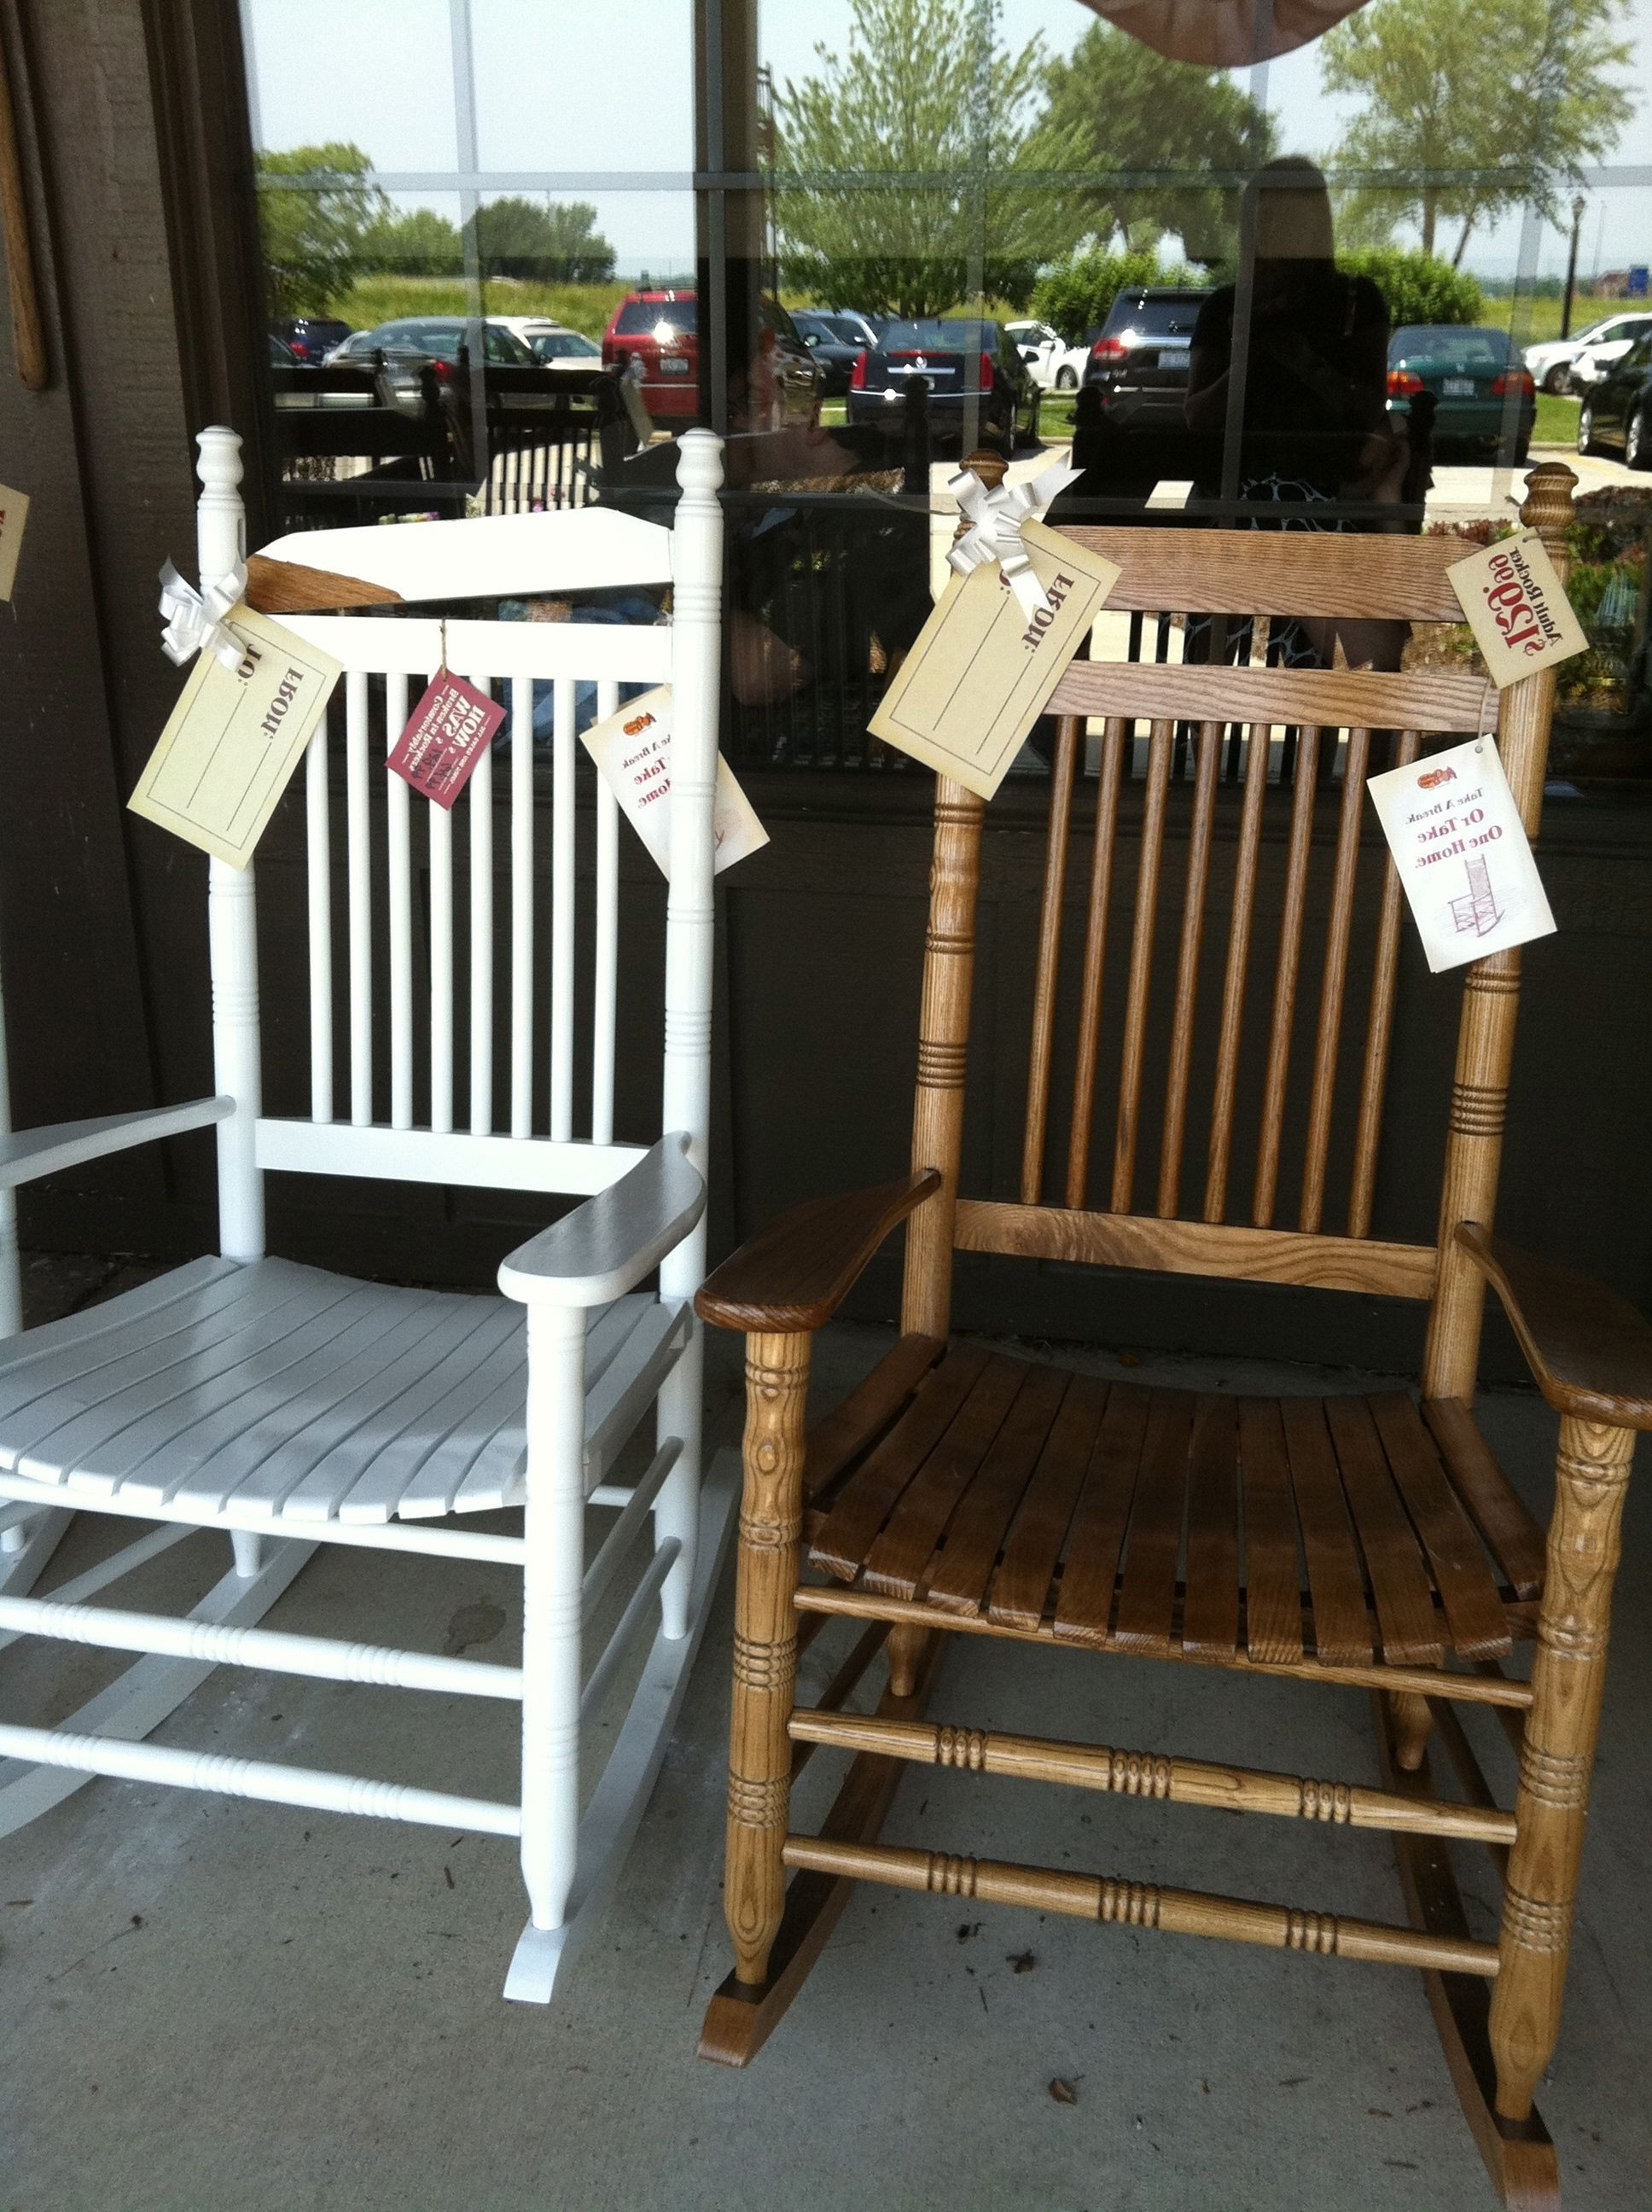 Most Popular Rocking Chairs At Cracker Barrel Intended For Beautiful Rocking Chairs At Cracker Barrel – Aleadecor (View 4 of 15)